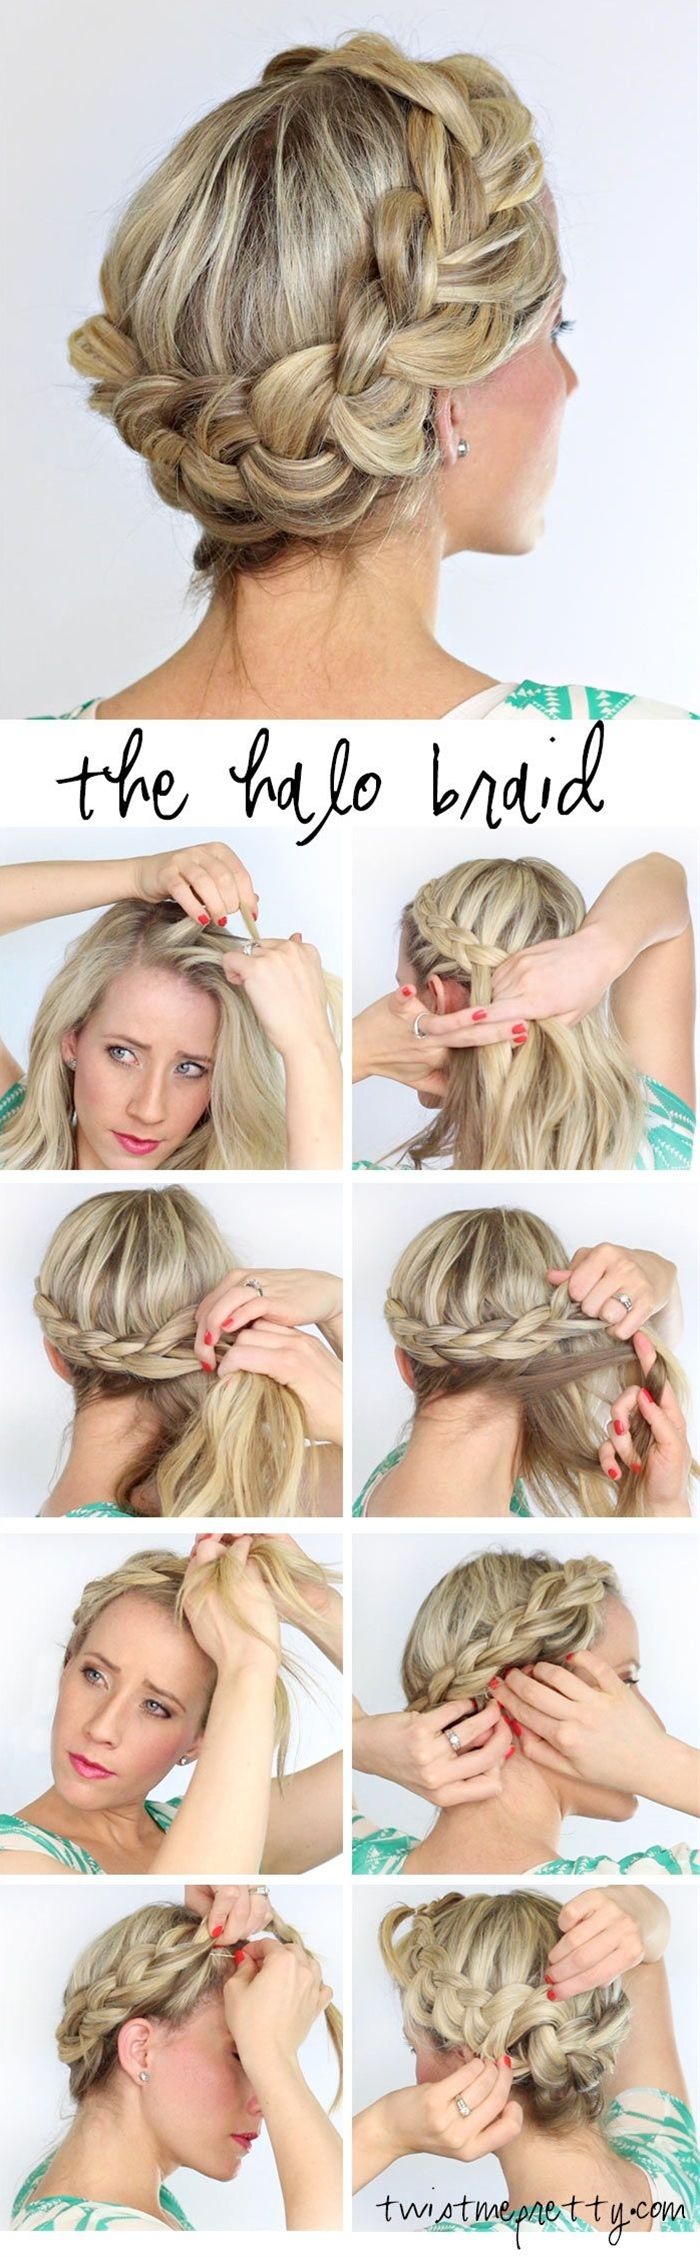 DIY Wedding Hairstyle to Try on Your Own